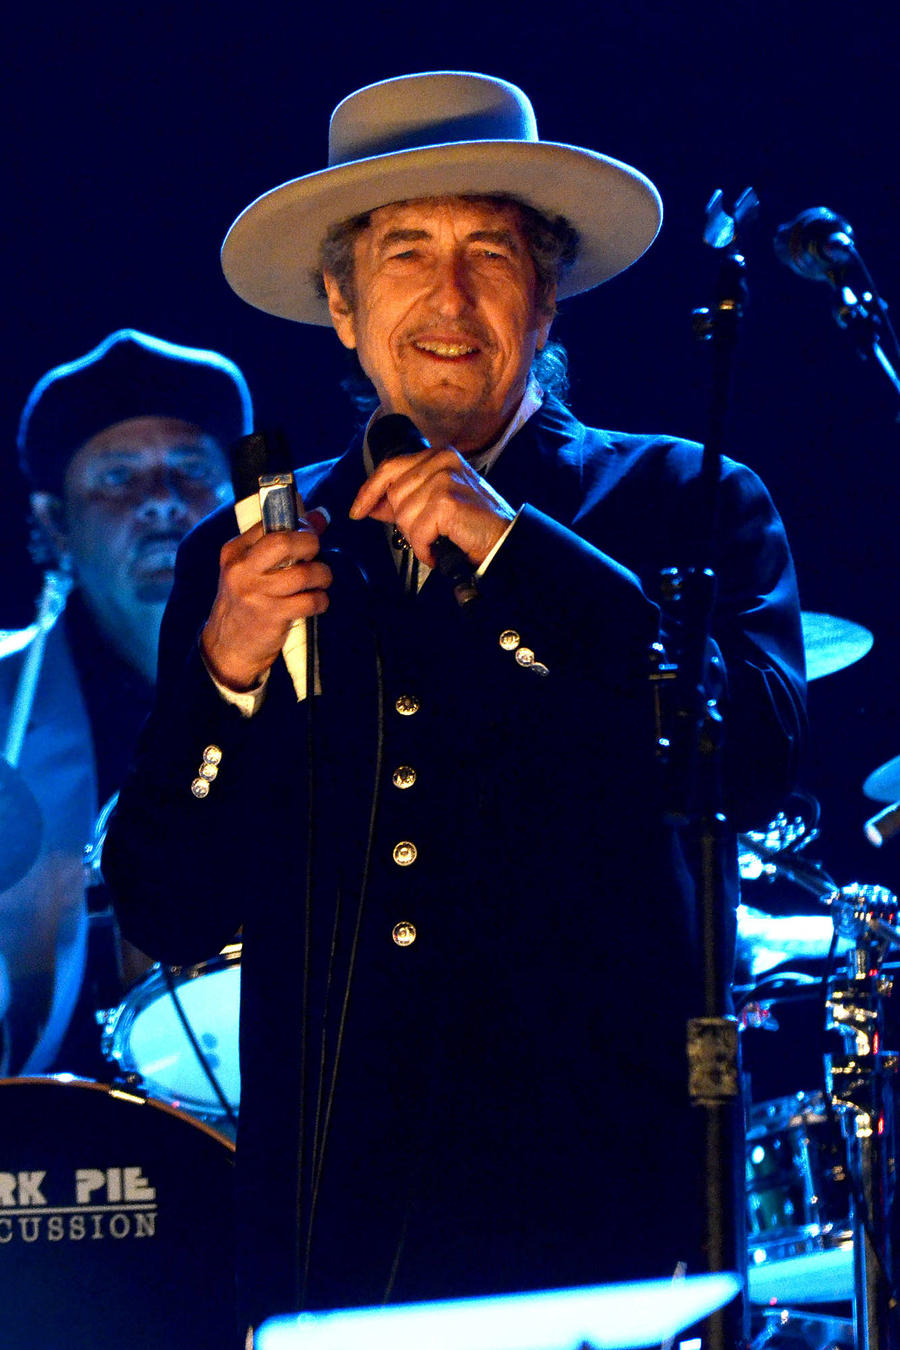 Bob Dylan Finally Receives His Nobel Prize For Literature